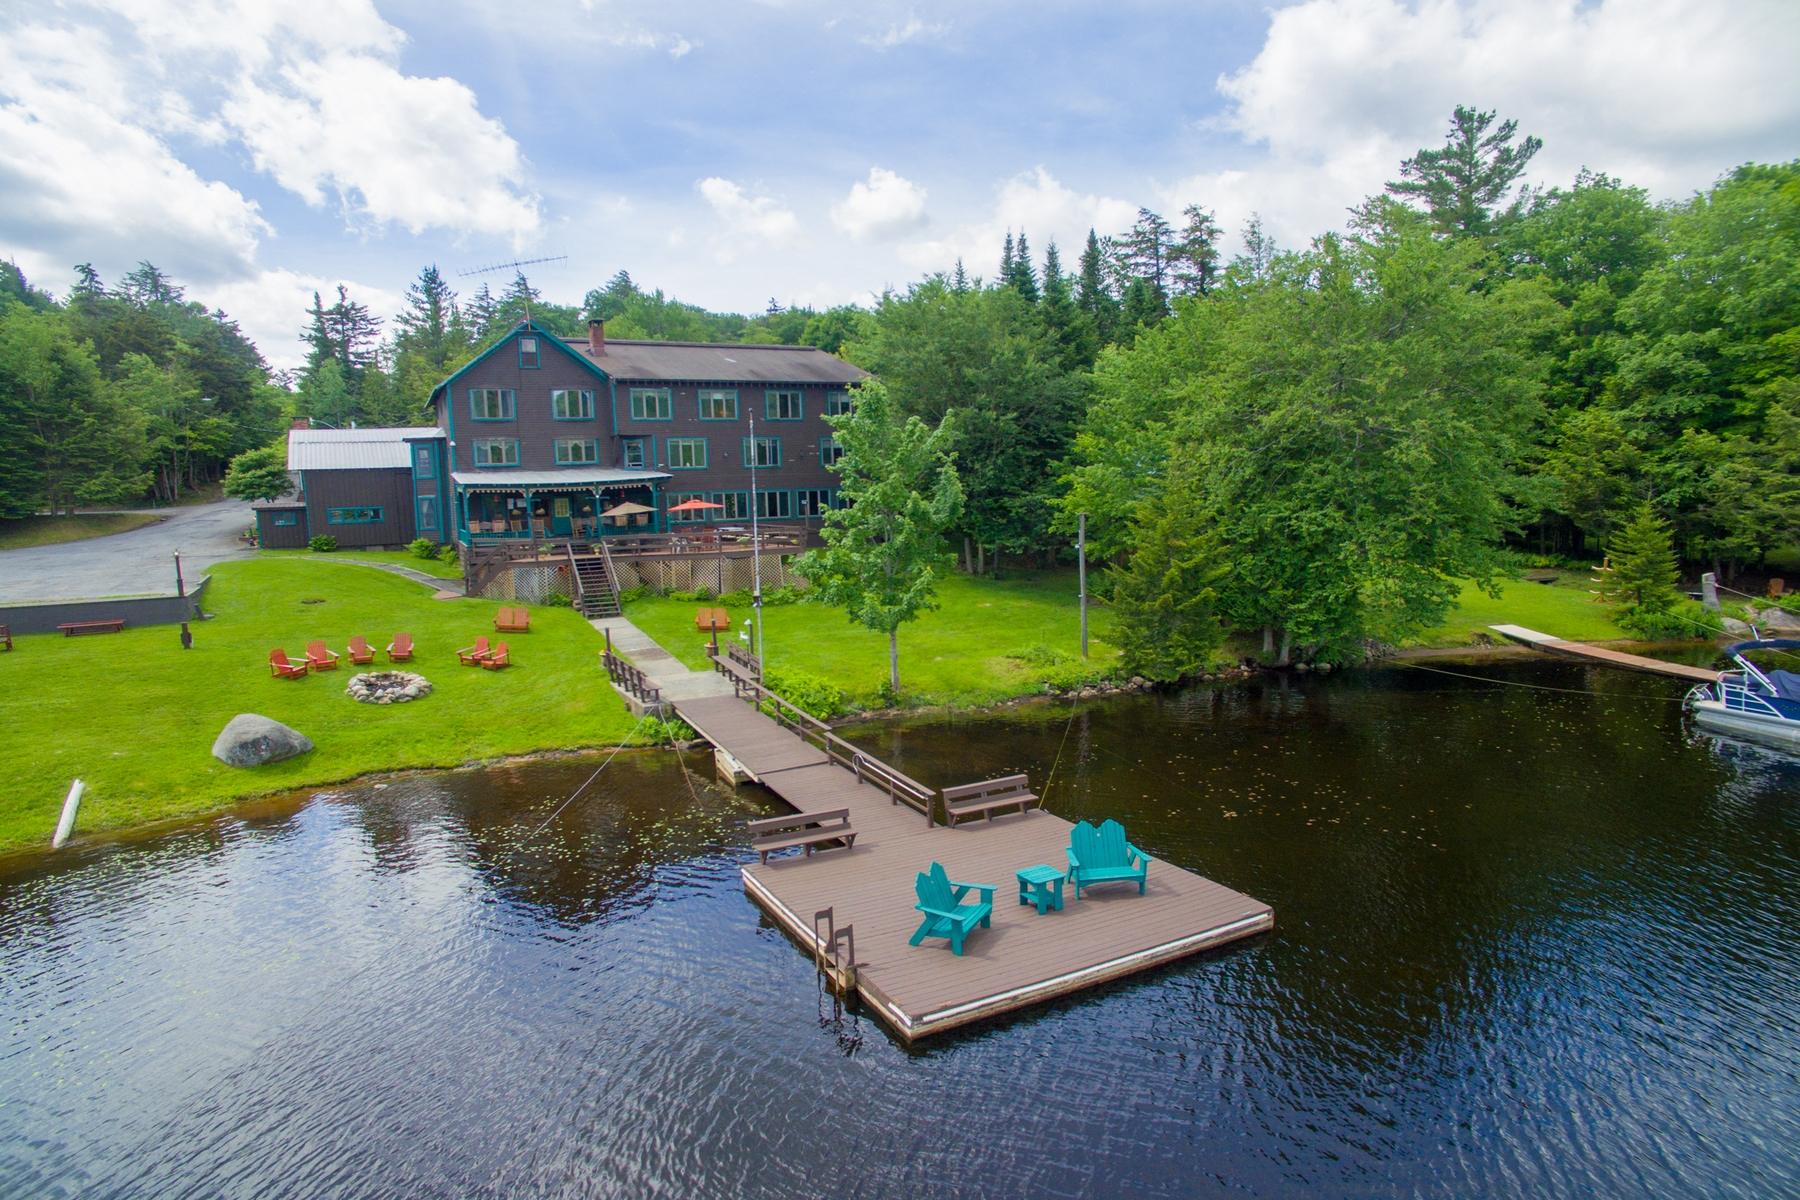 Other Residential for Sale at Adirondack Inn on Big Moose Lake 1510 Big Moose Rd Eagle Bay, New York 13331 United States